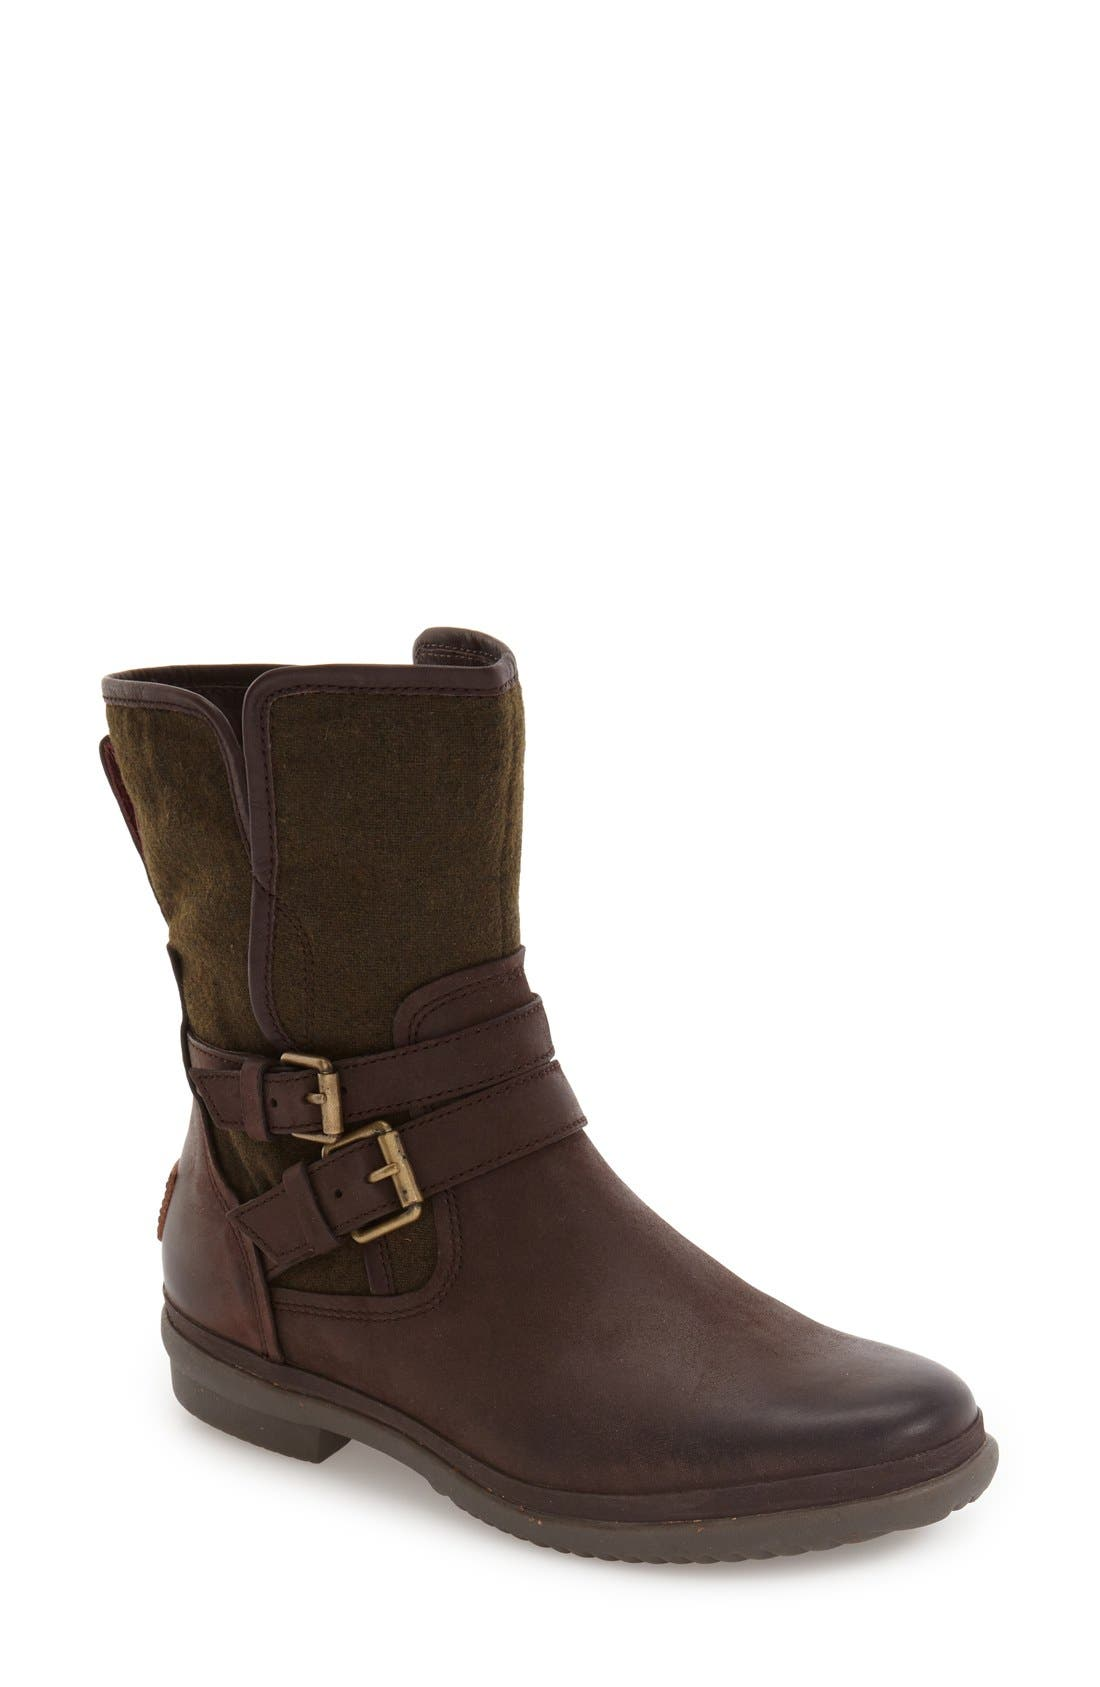 Main Image - UGG® Simmens Waterproof Leather Boot (Women)